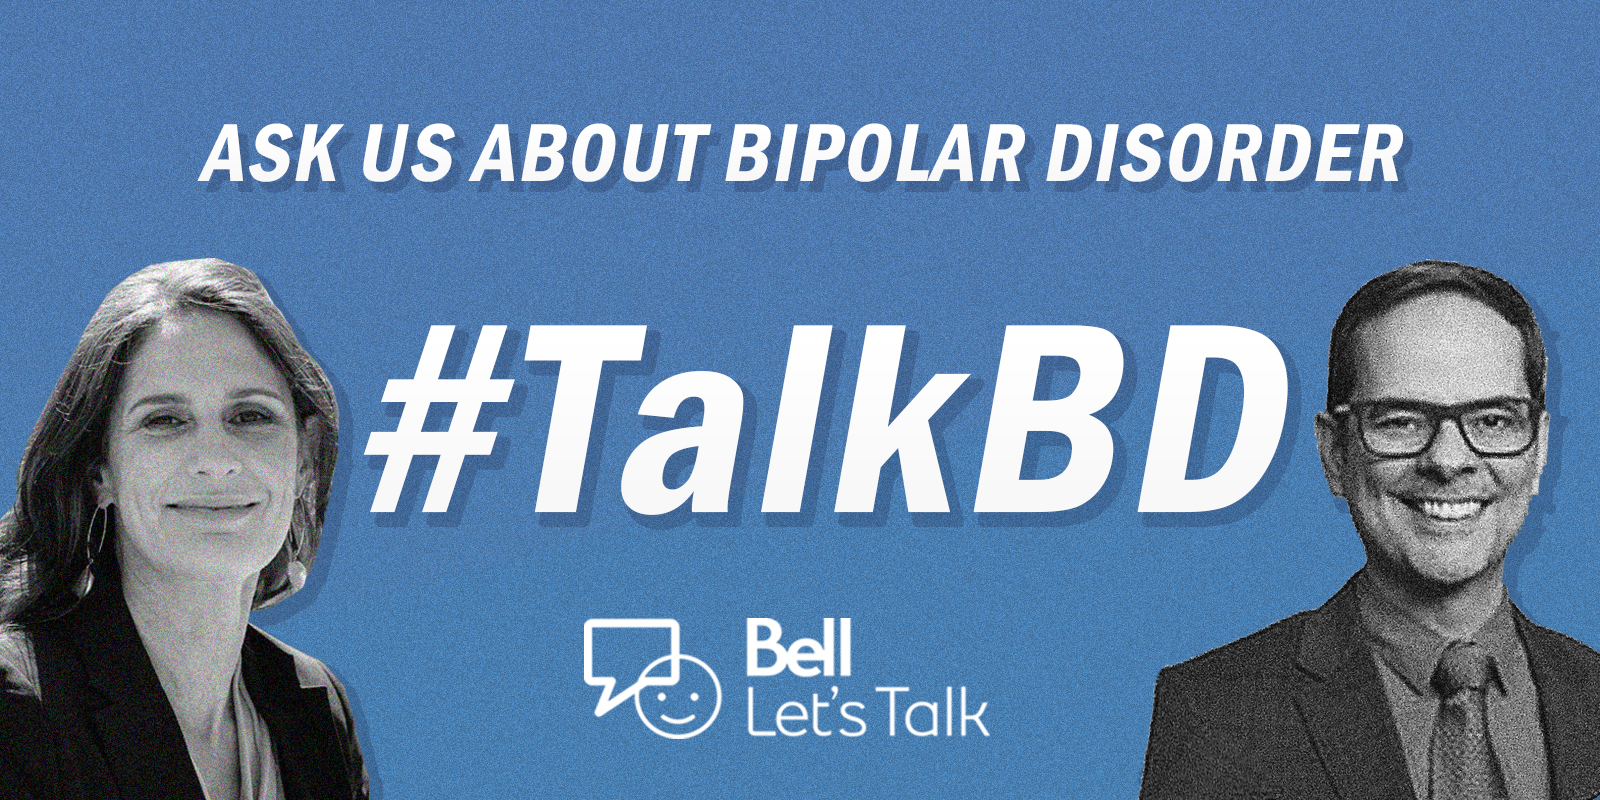 Ask us about bipolar disorder on Bell Let's Talk 2020! #TalkBD